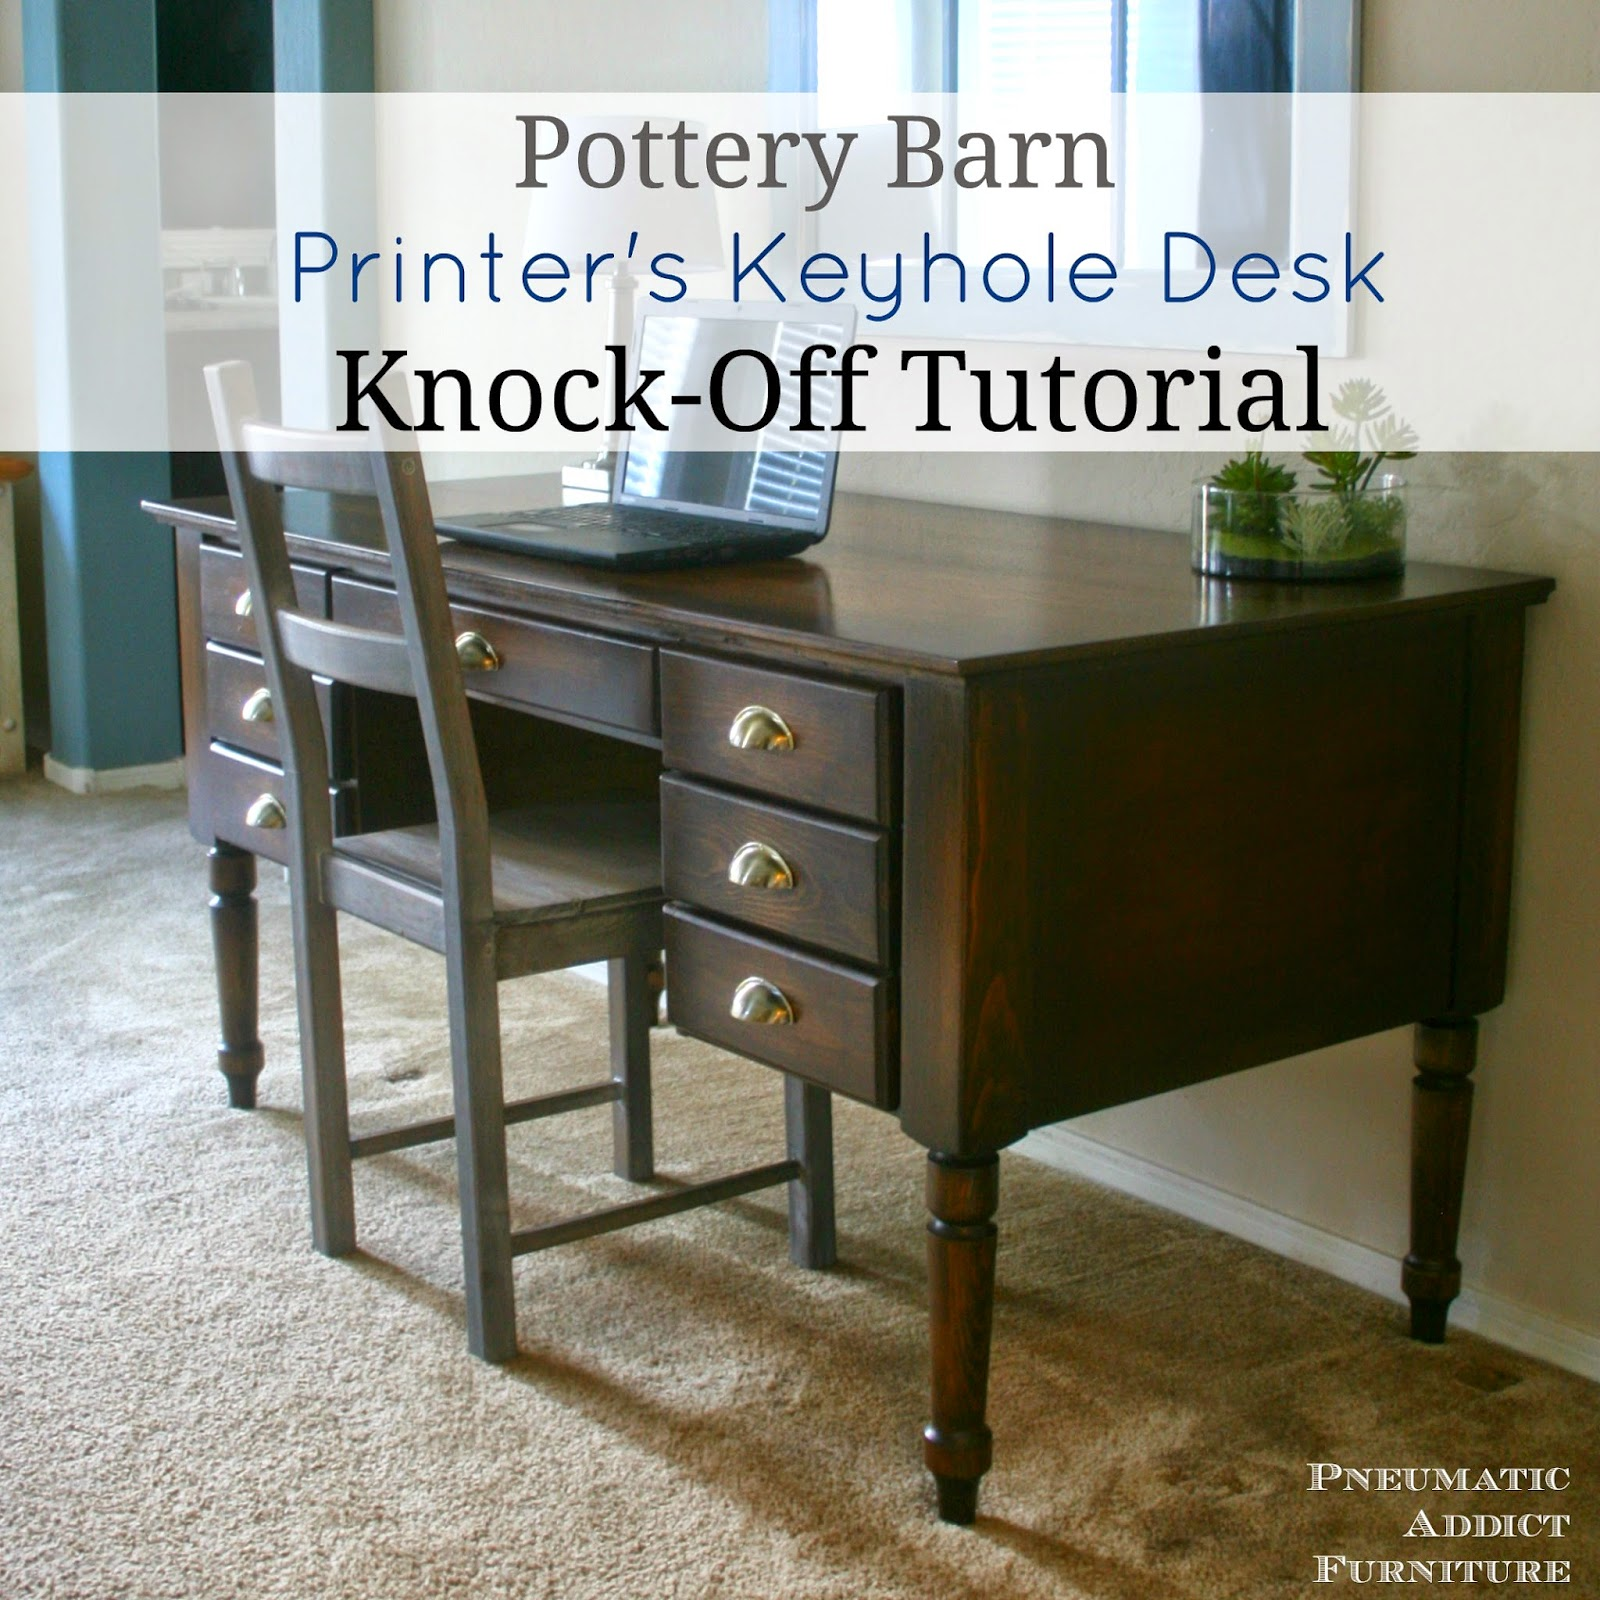 Pneumatic Addict Pottery Barn Printer 39 S Keyhole Desk